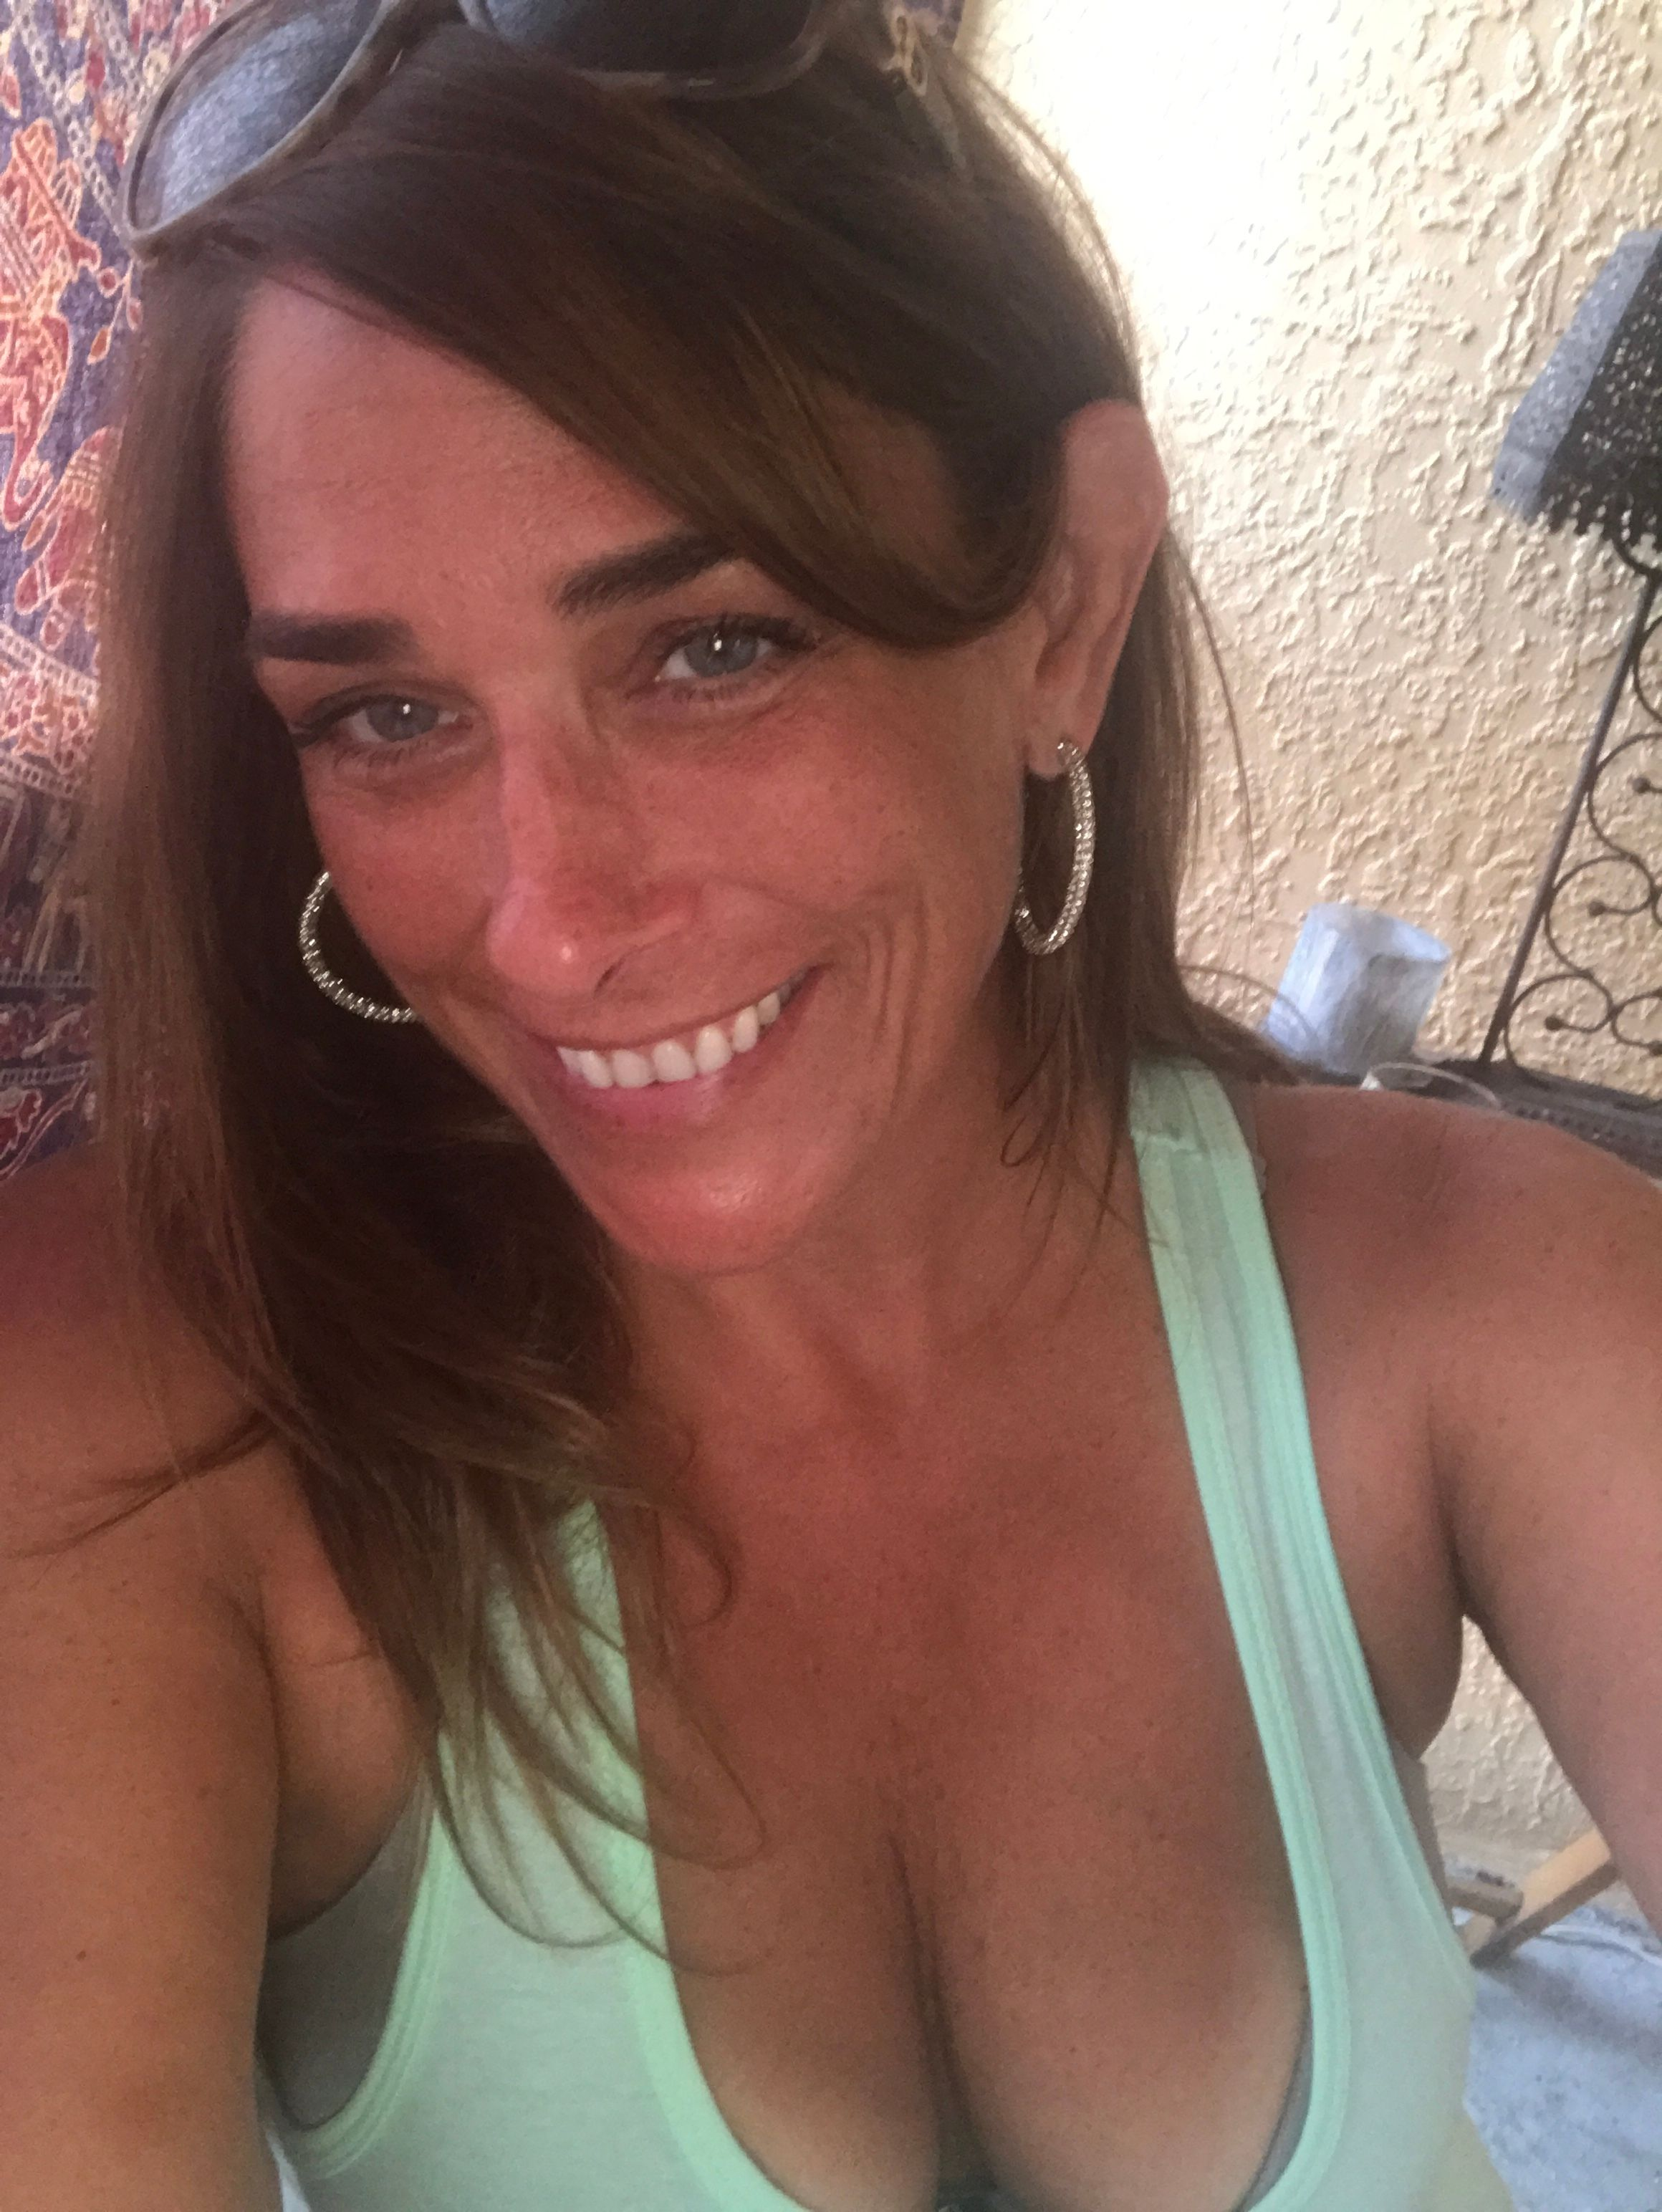 west palm beach buddhist single women Meet west palm beach single women online interested in meeting new people to date zoosk is used by millions of singles around the world to meet new people to date.